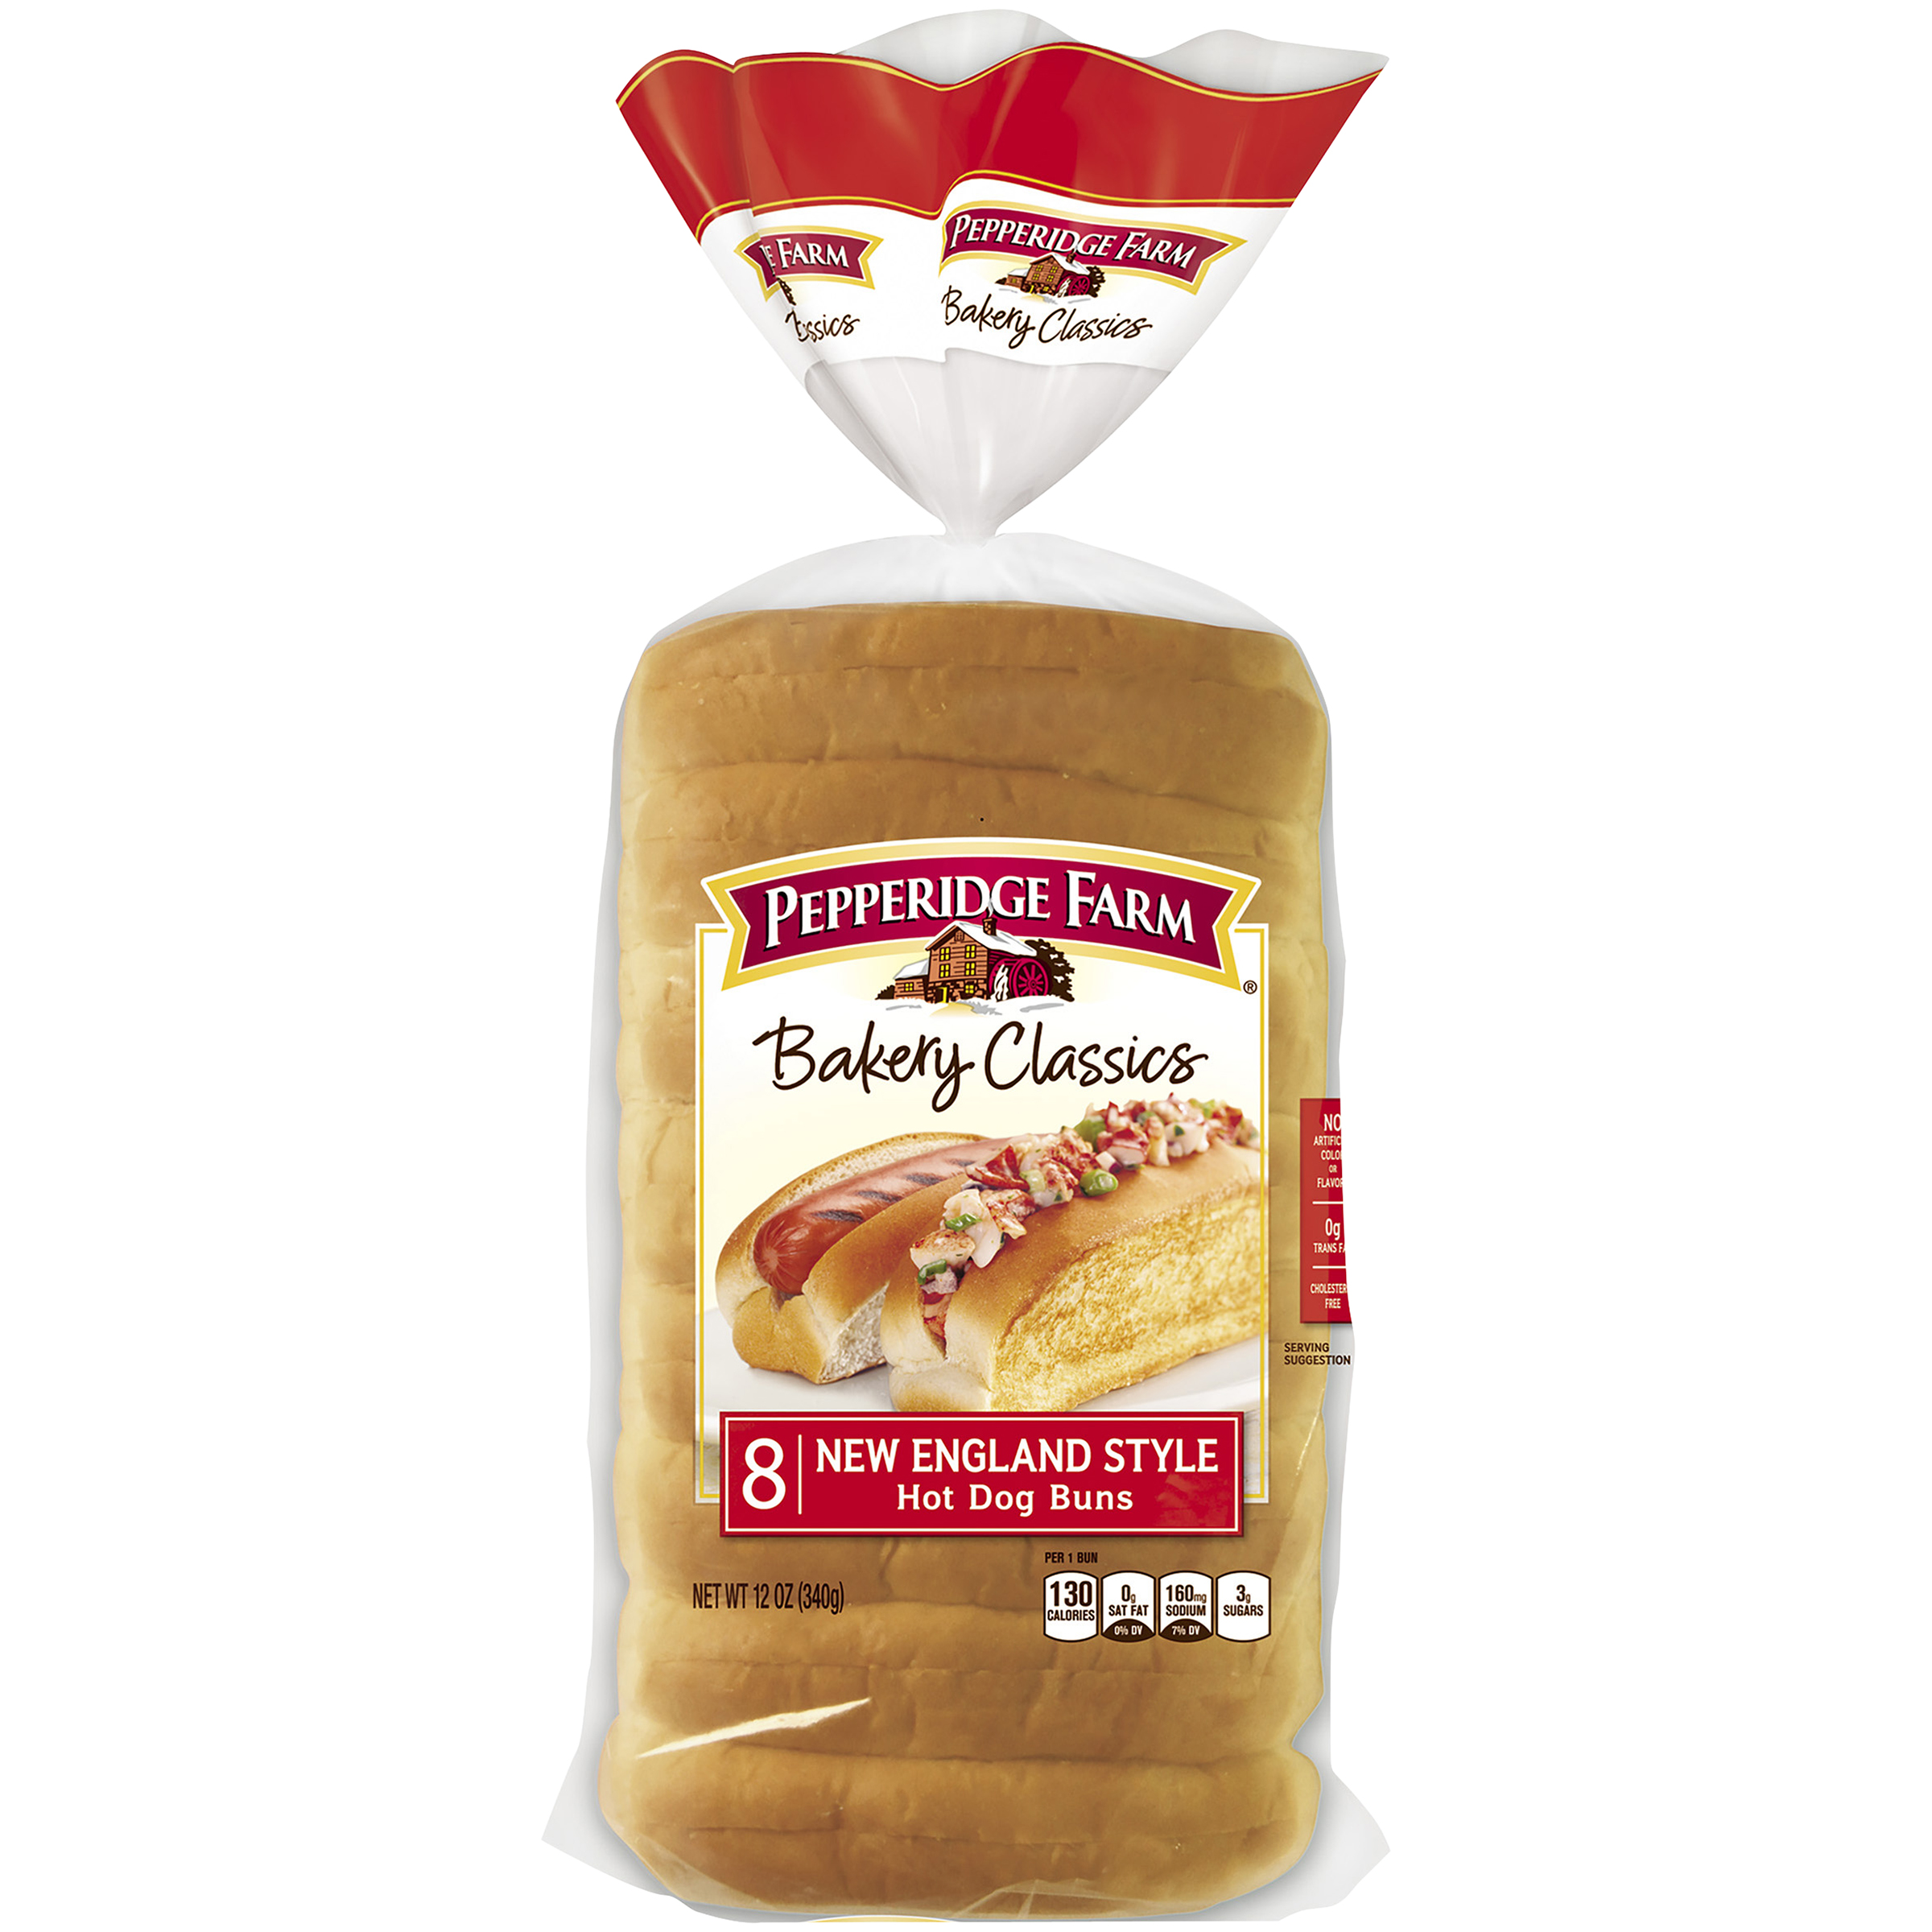 Delightful Pepperidge Farm® Bakery Classics New England Style Hot Dog Buns 12 Oz. Pack    Walmart.com